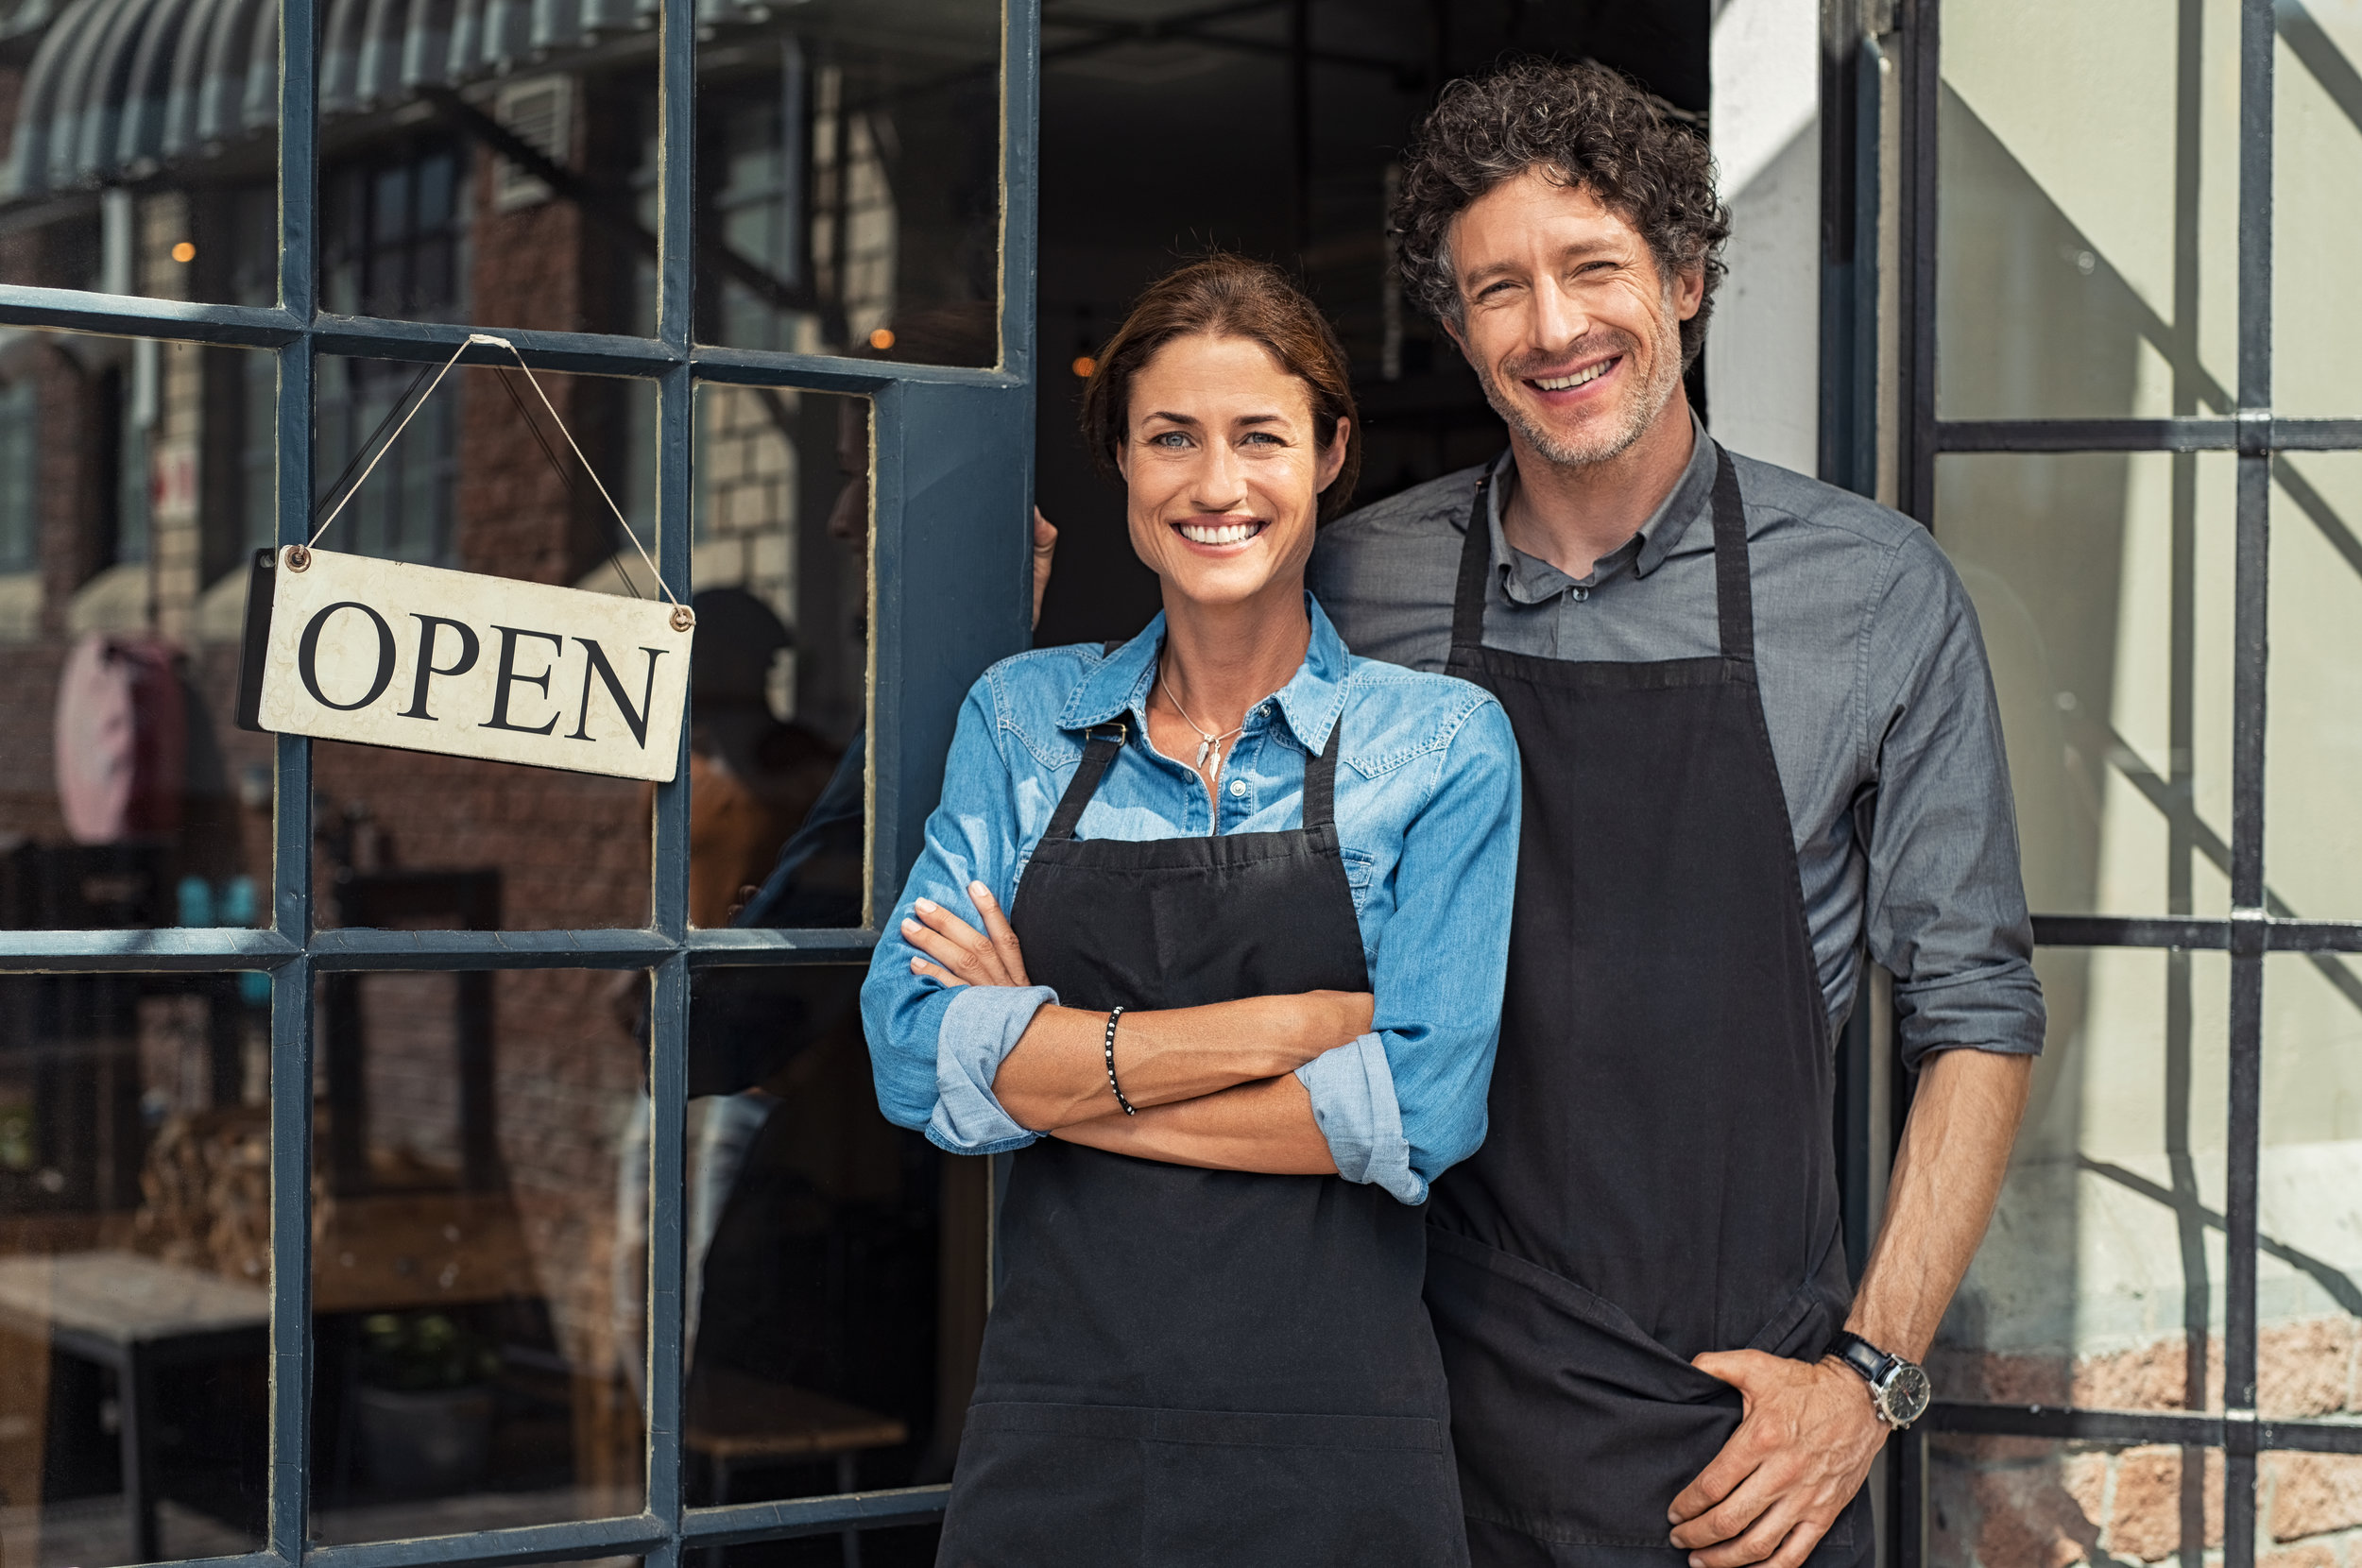 shutterstock_1277806525 - Small Business - happy couple opne sign.jpg